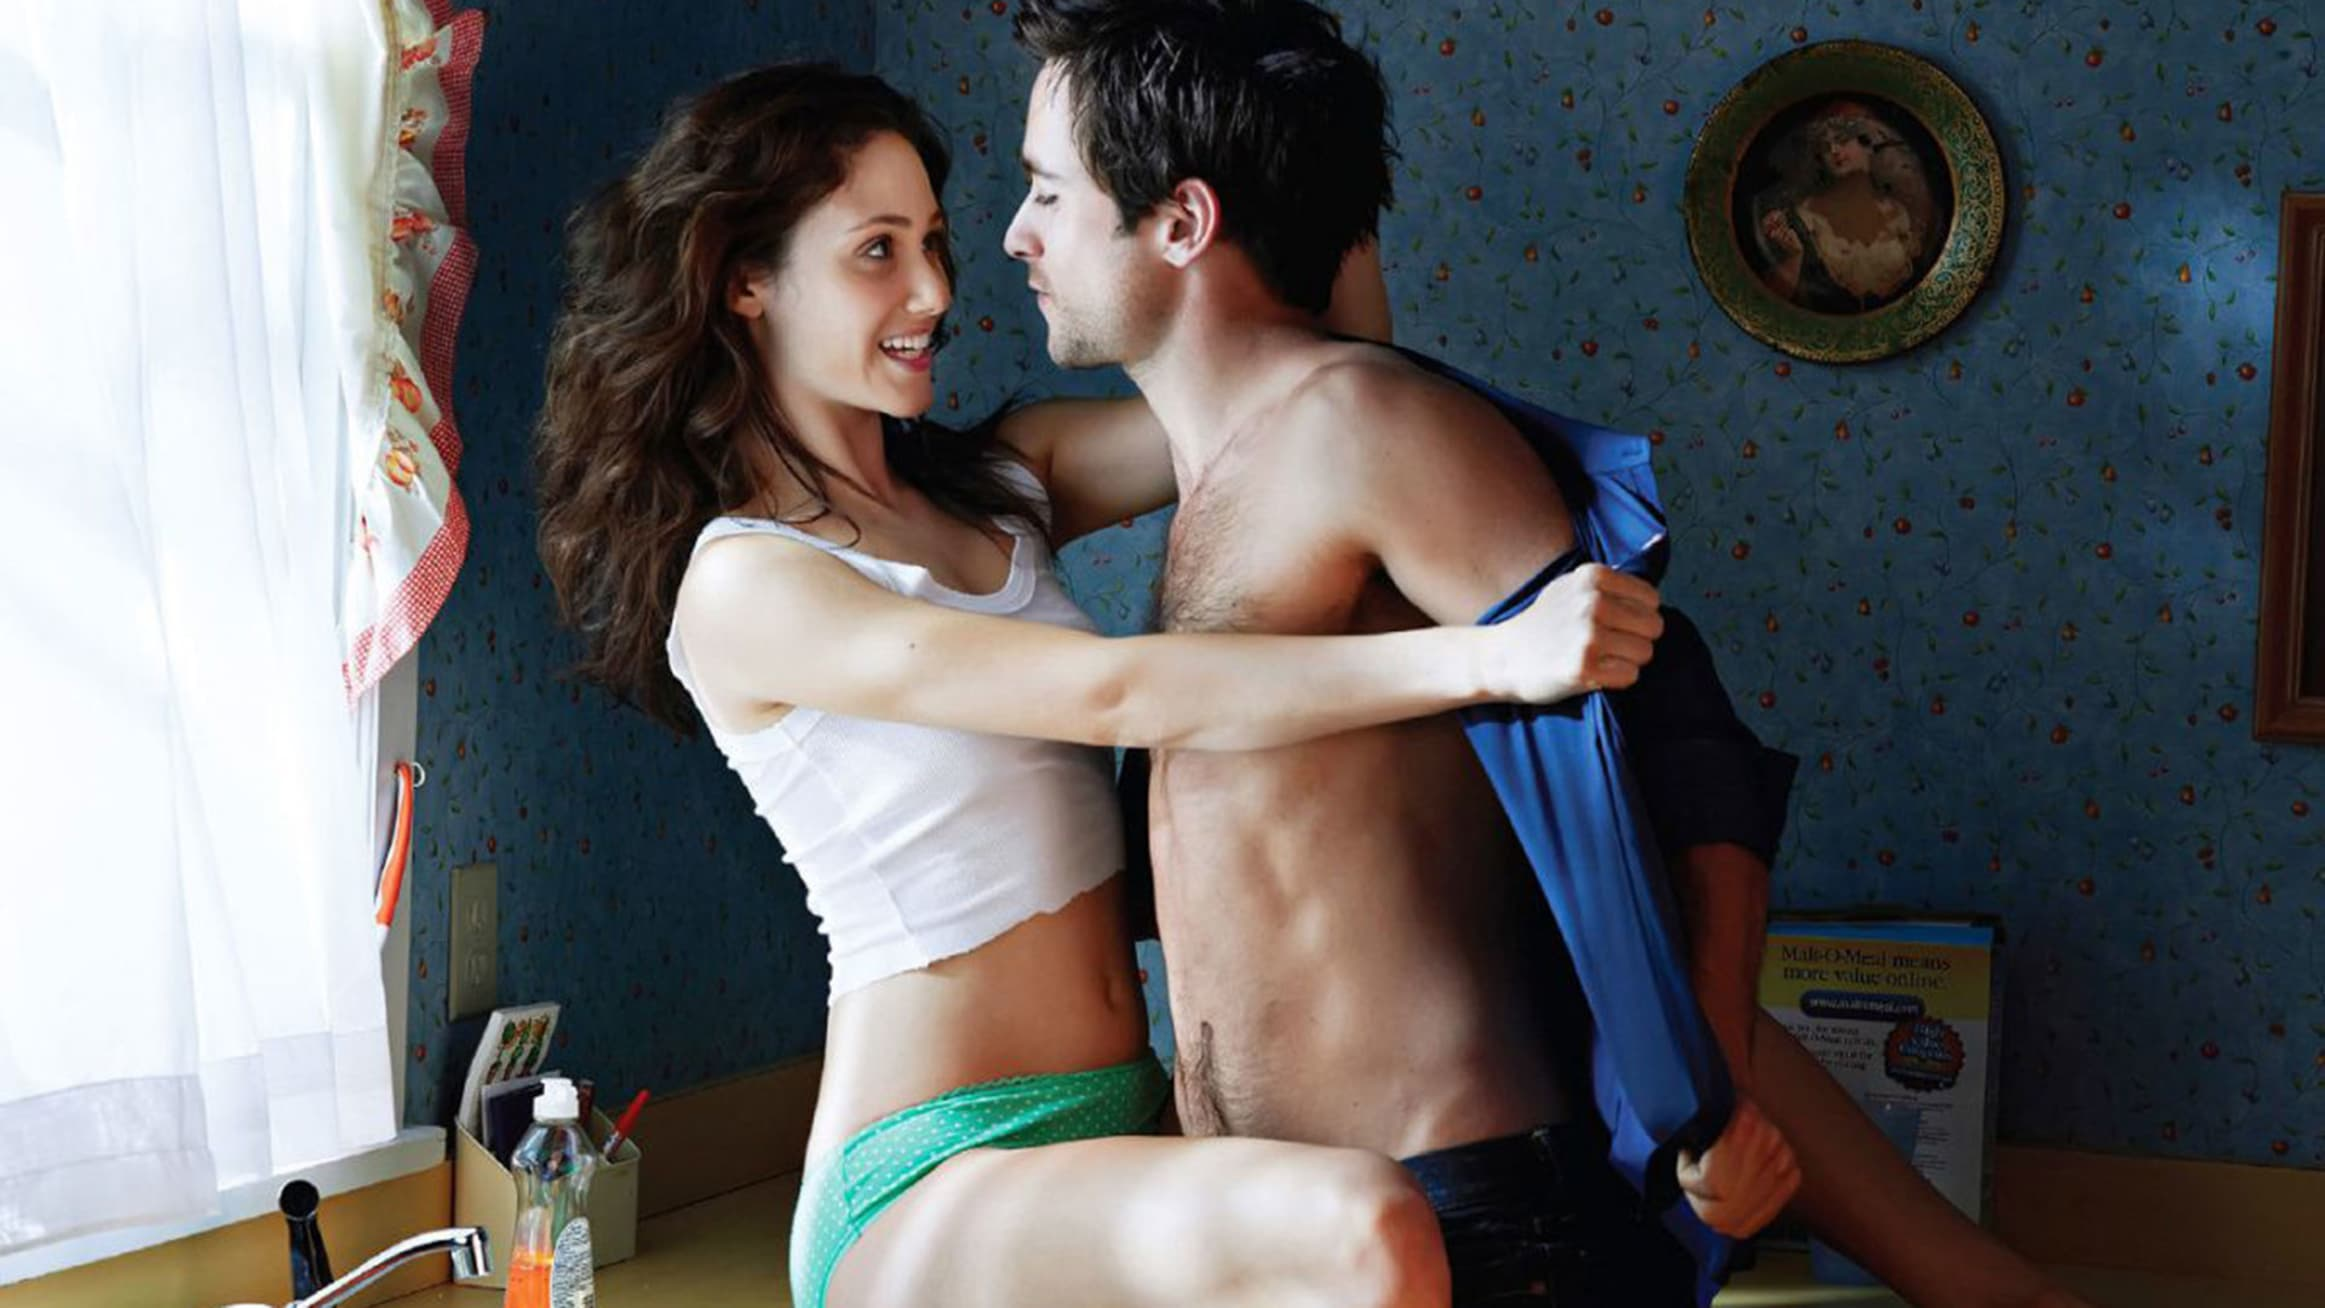 These 16 Shows Gave Us Some of the Best Sex Scenes on TV